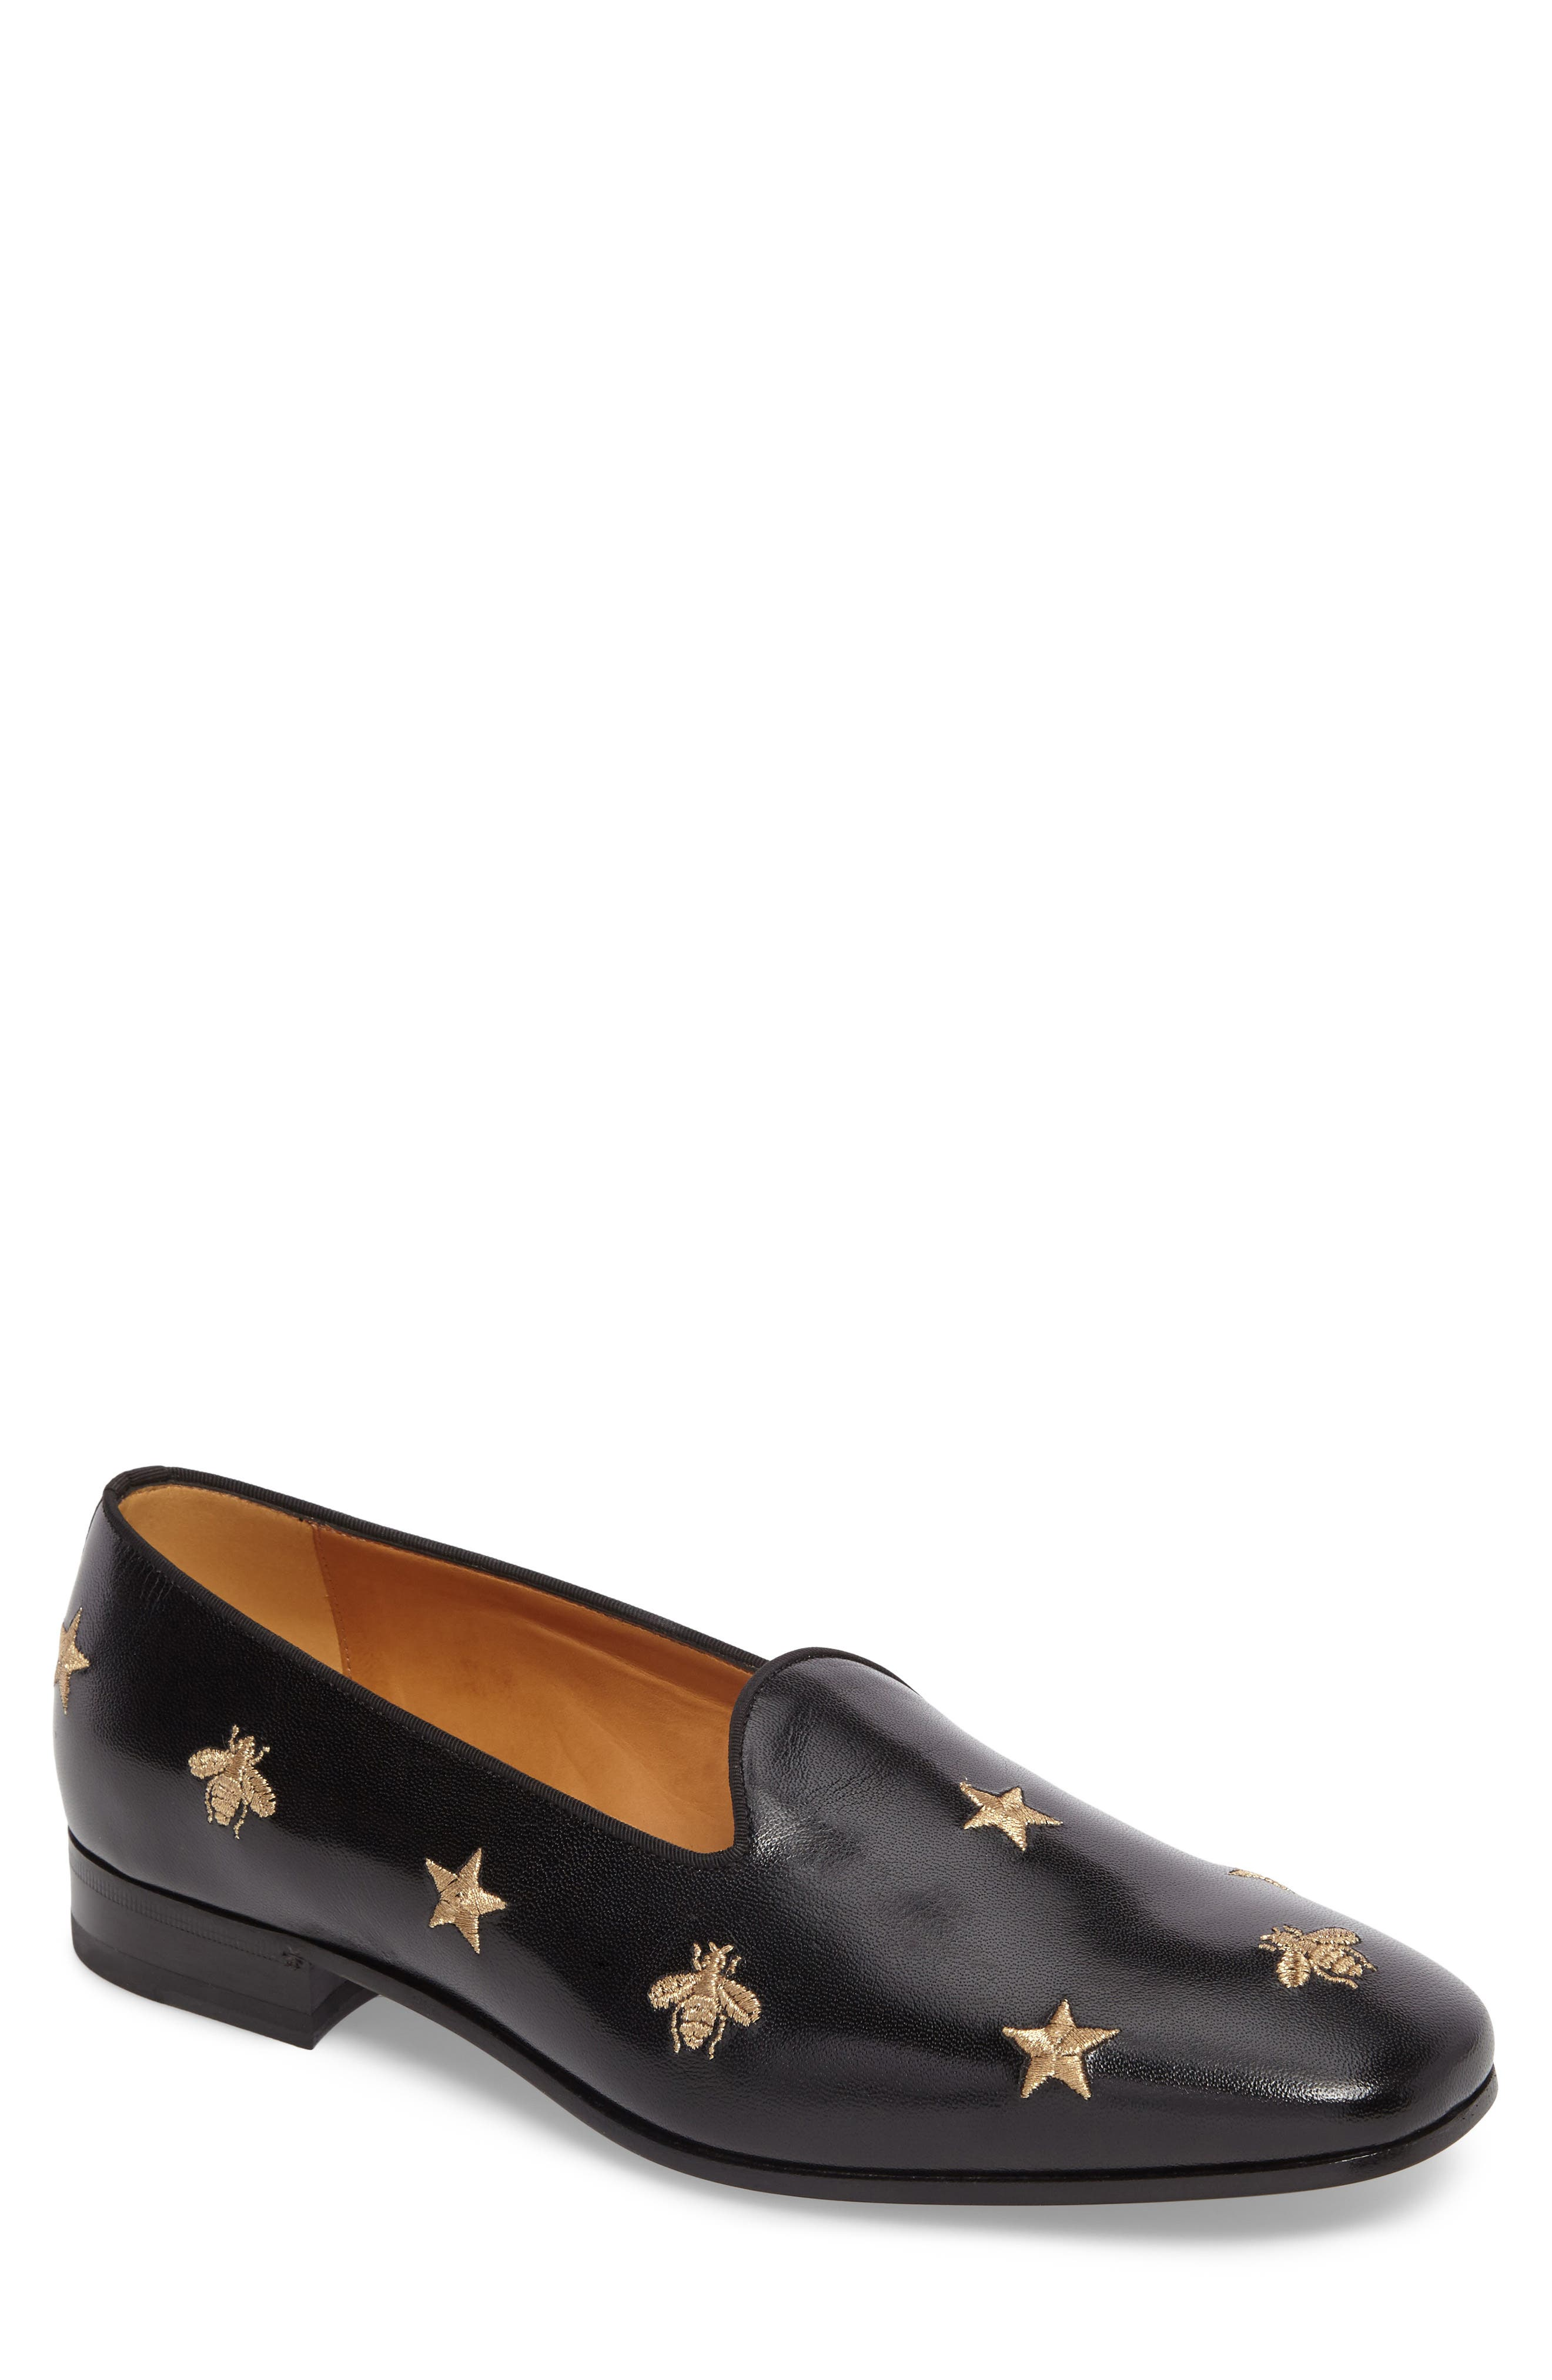 Embroidered Leather Loafer,                         Main,                         color, 001